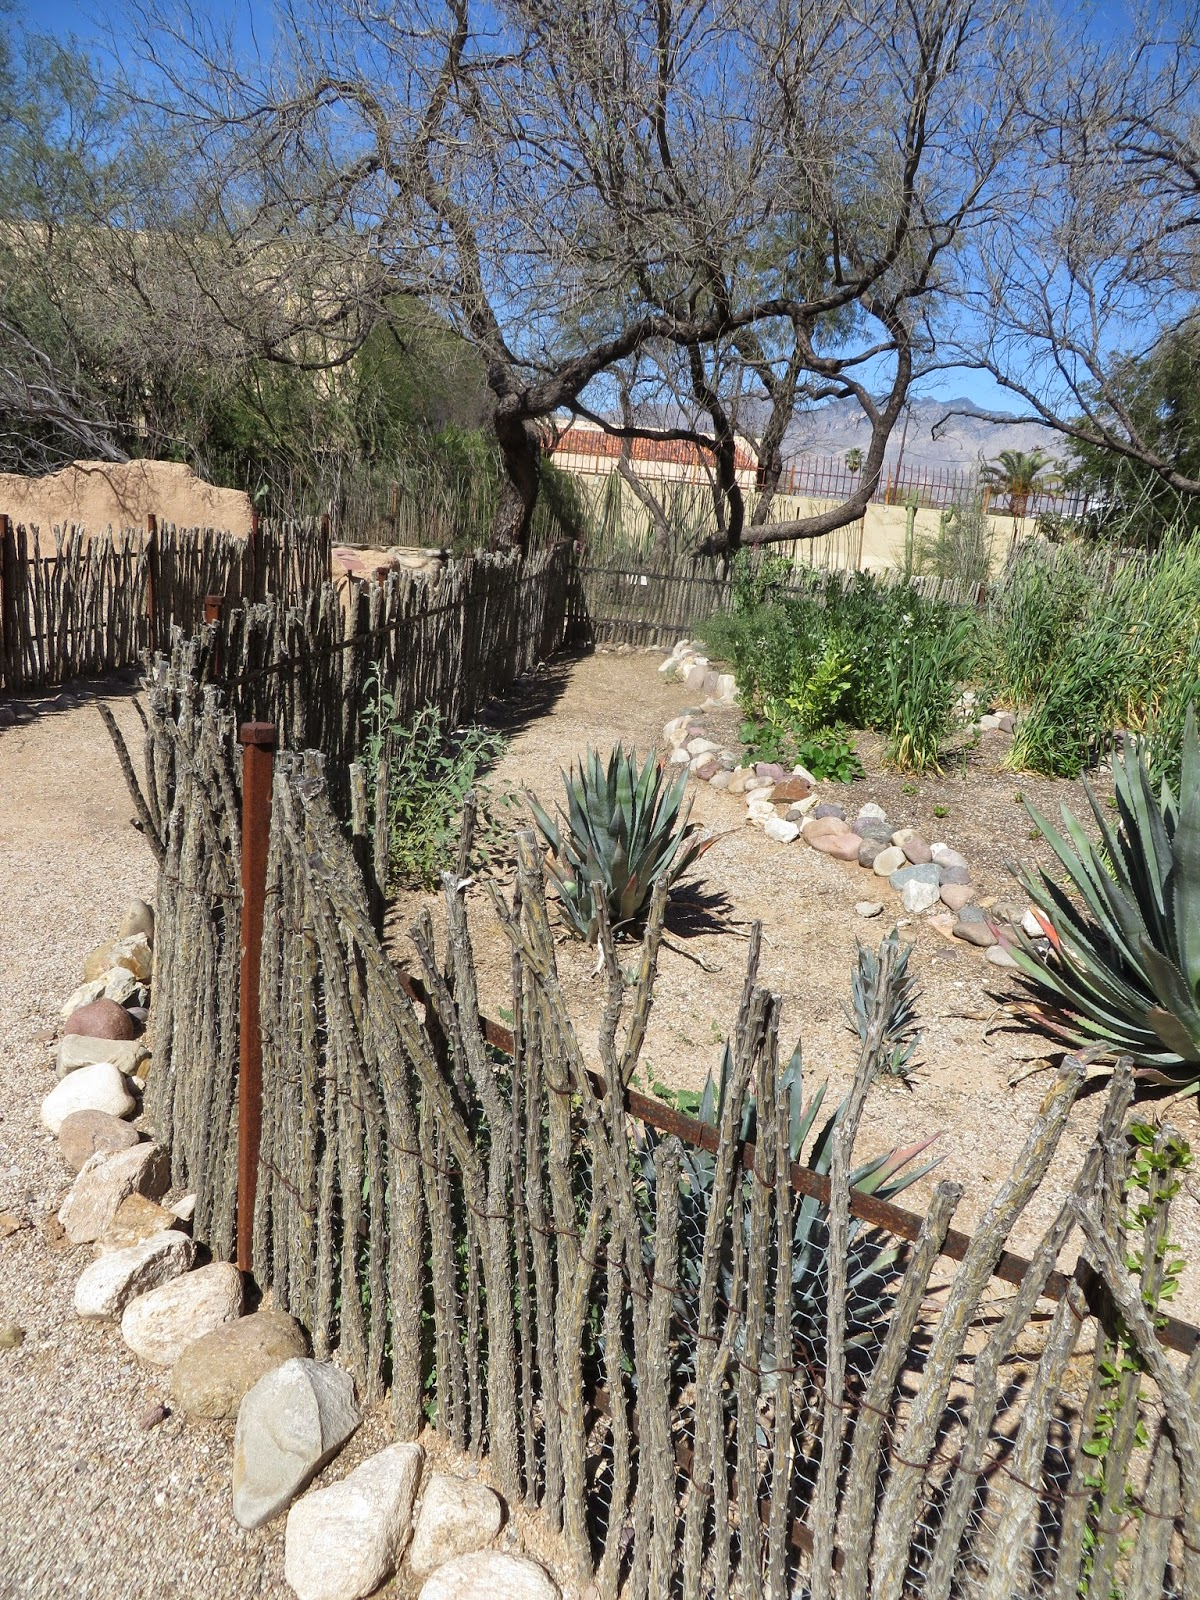 Ocotillo Cactus Fence Ever Ready: Tucson Bot...